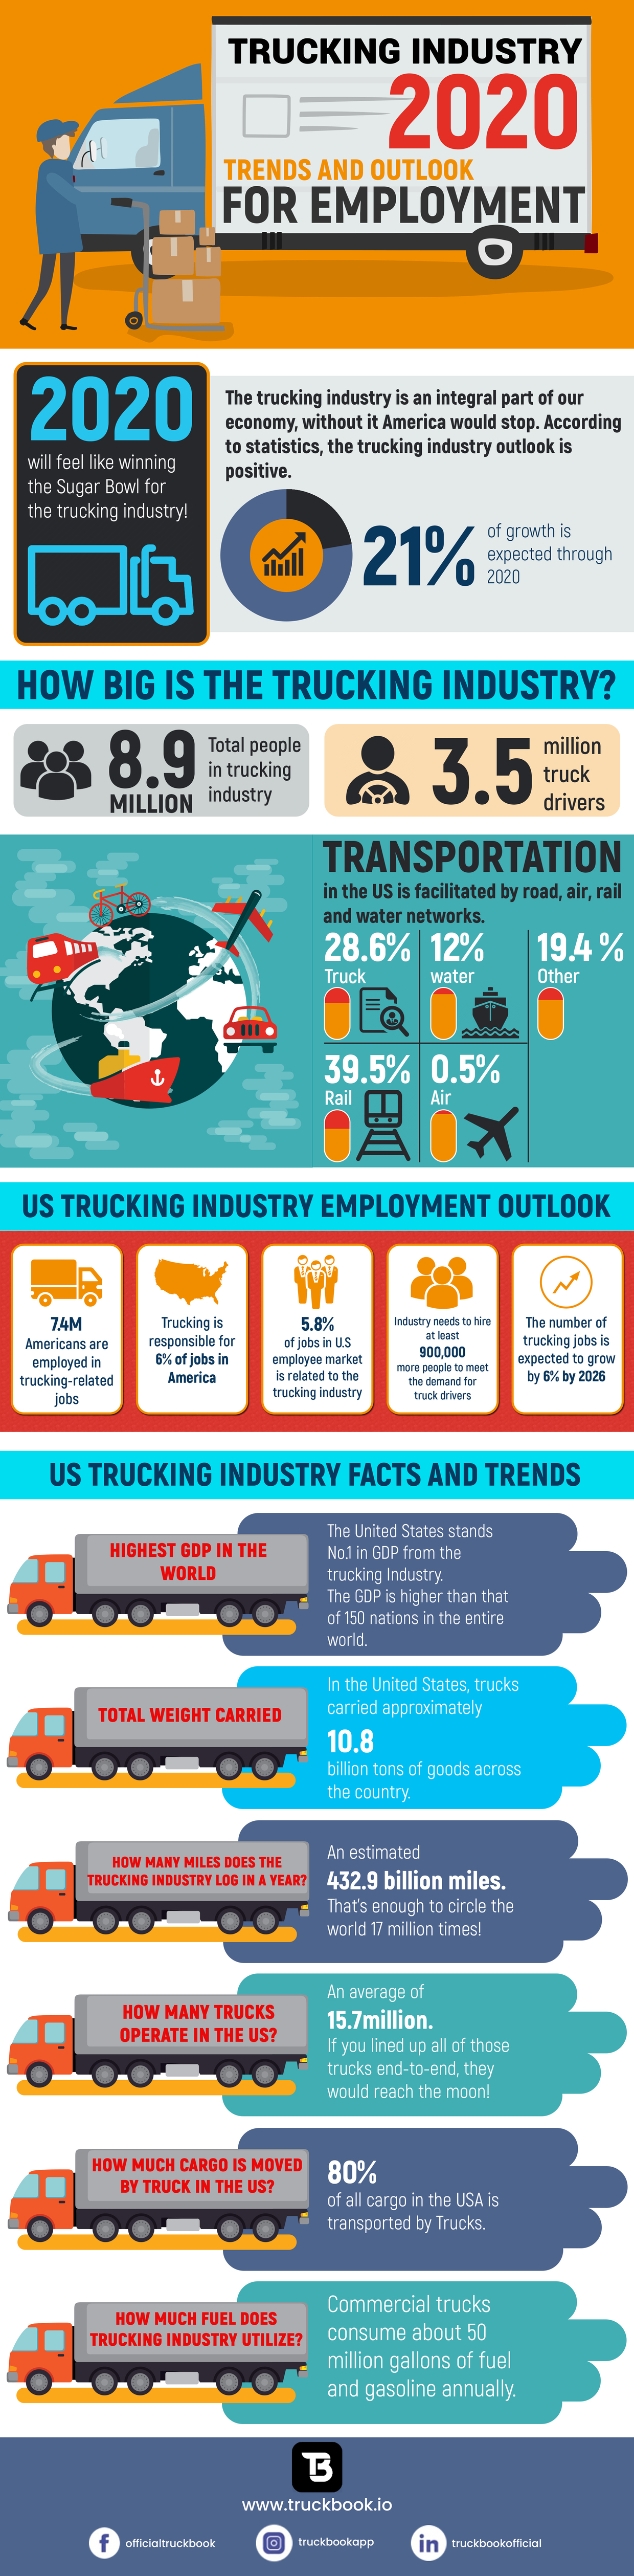 Trucking Industry 2020: Trends and Outlook For Employment